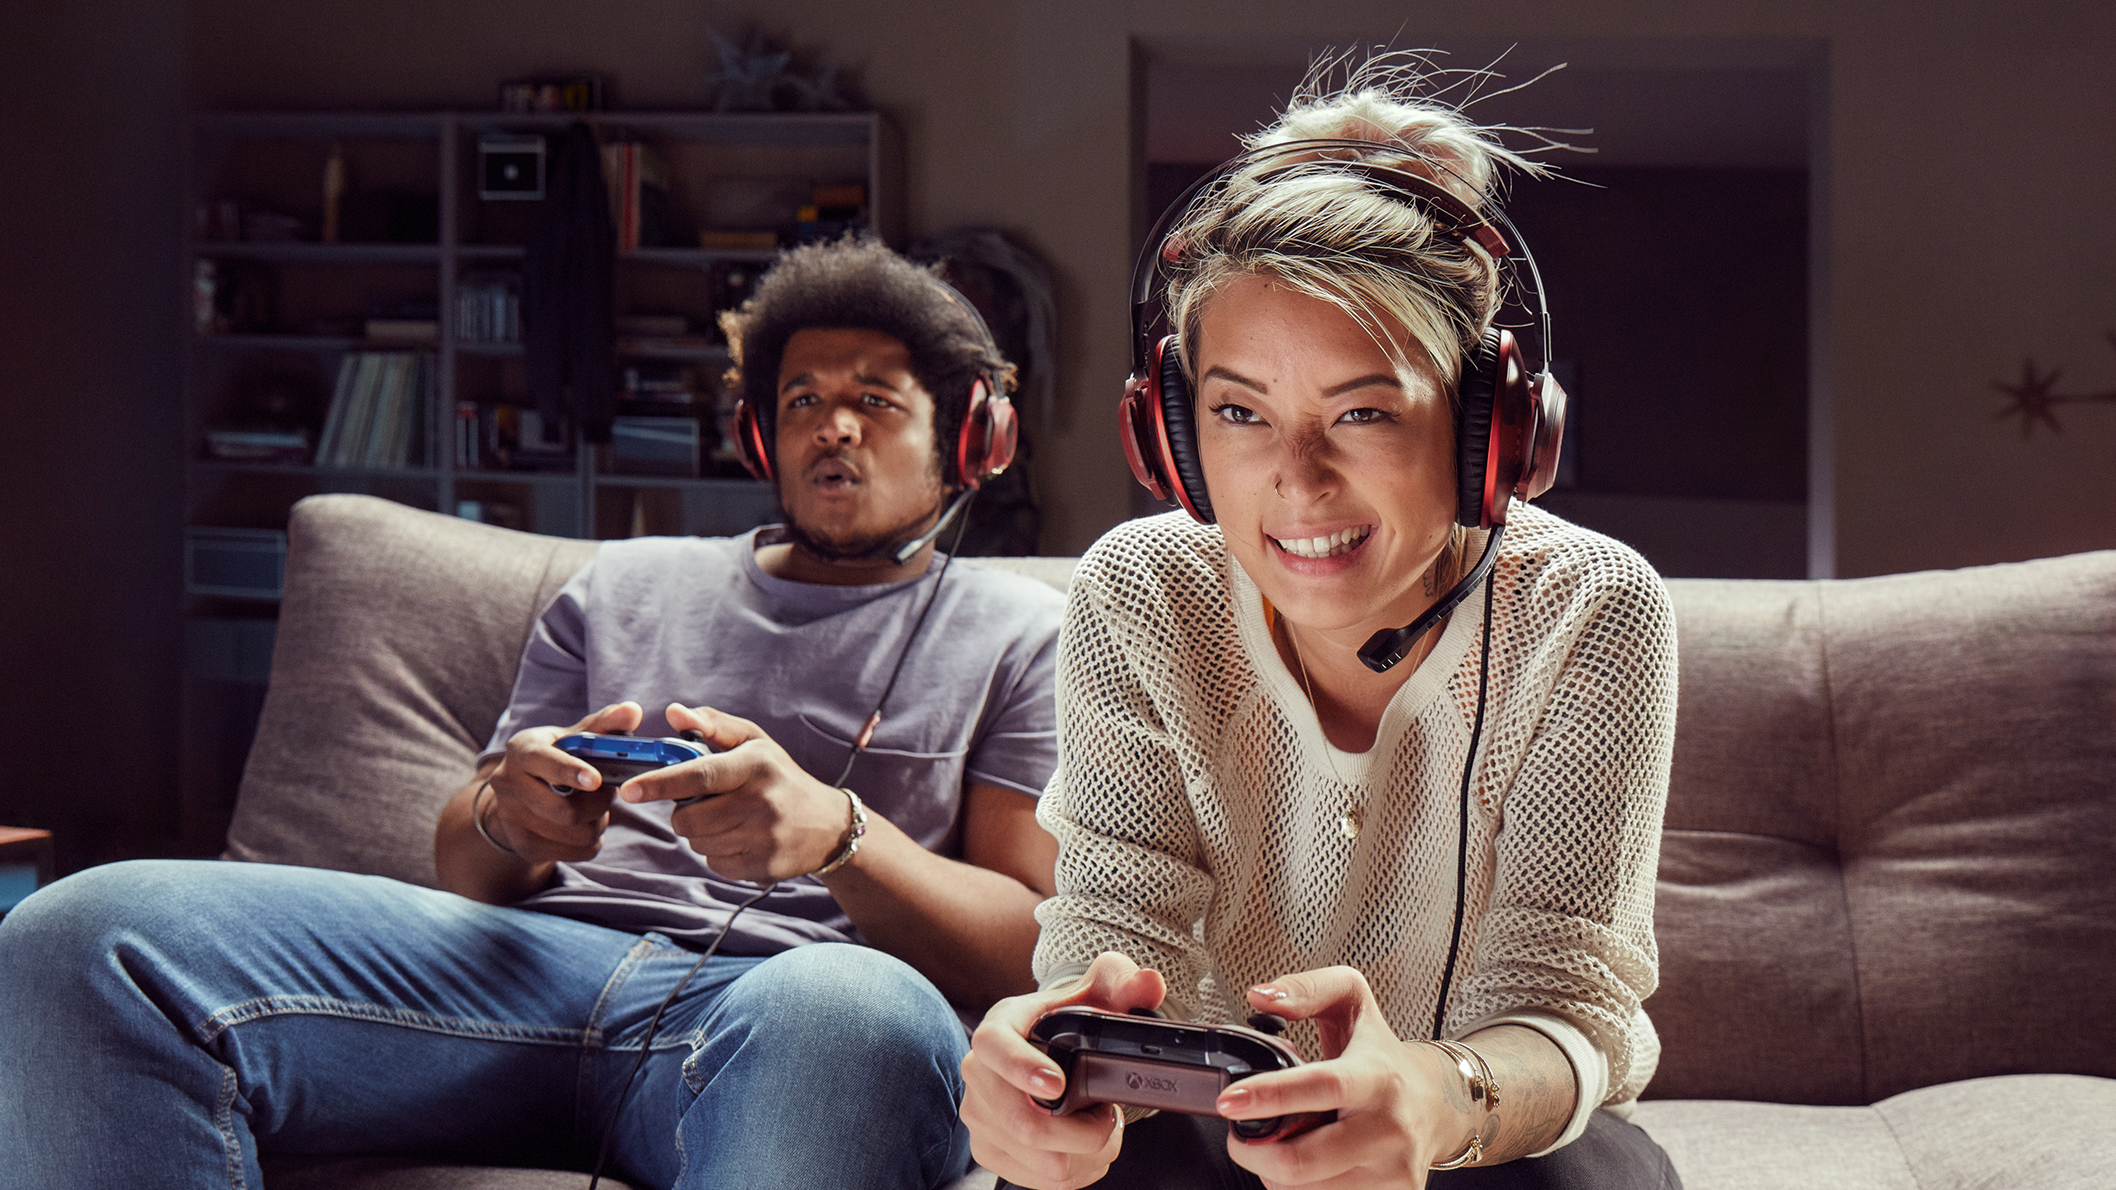 Two people playing with Xbox on a sofa